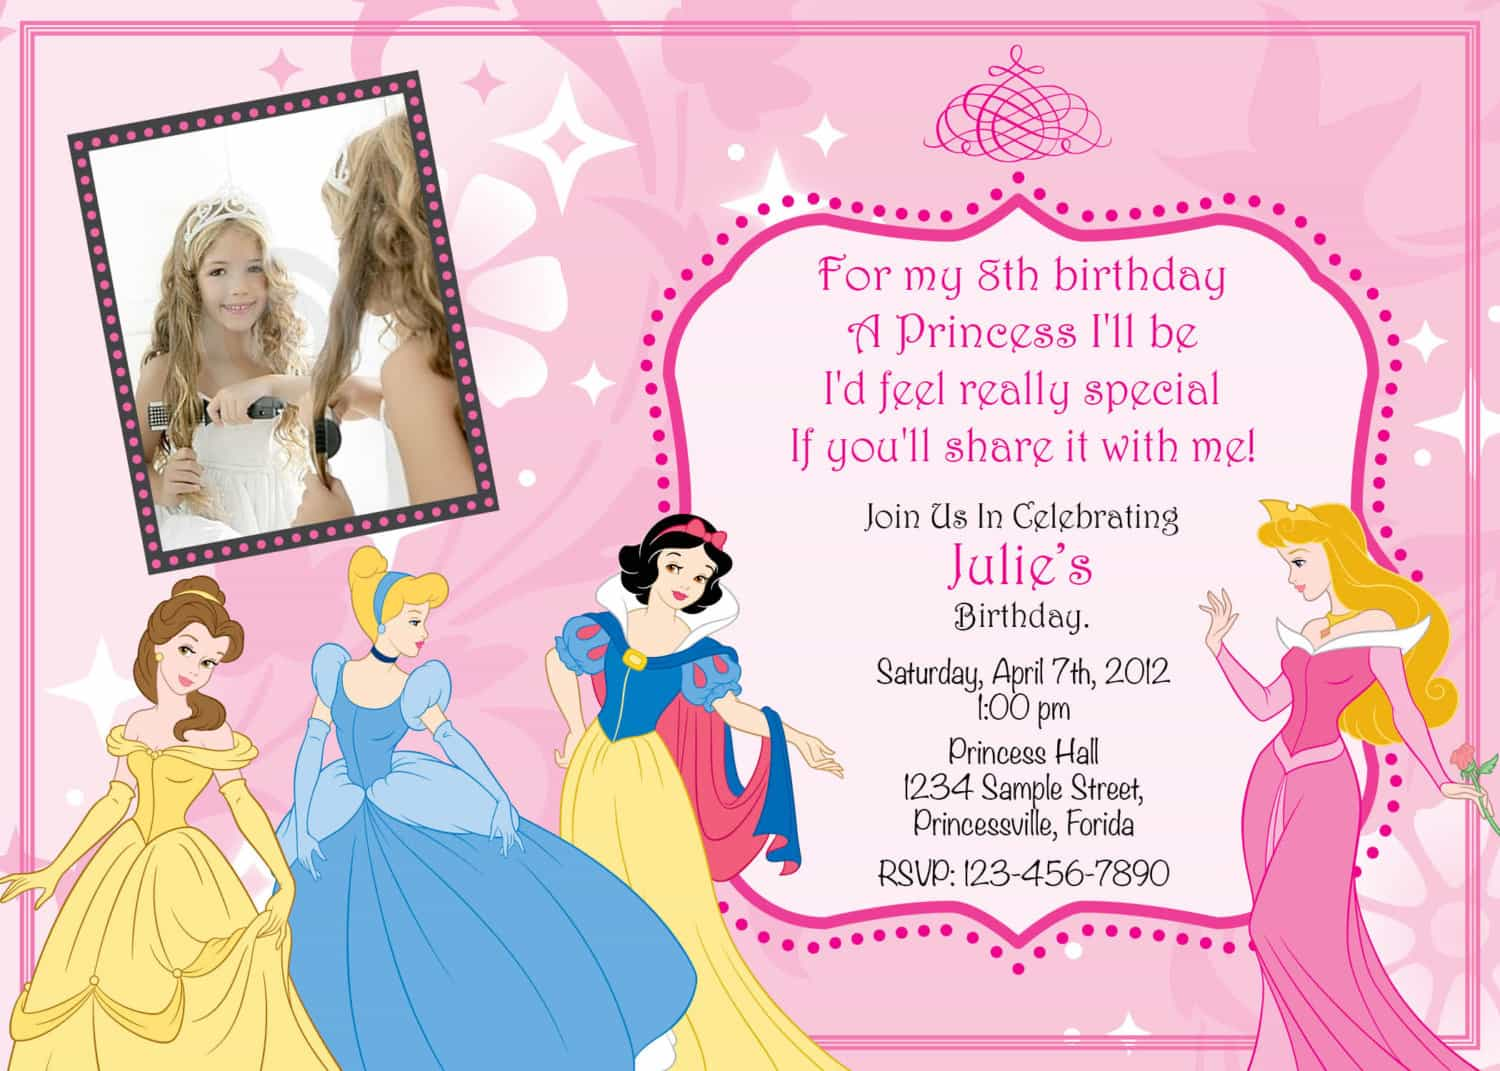 princess birthday invitations with photo ; best-princess-birthday-invitations-free-prepossessing-layout-the-unique-ideas-for-princess-birthday-invitations-egreeting-ecards-com